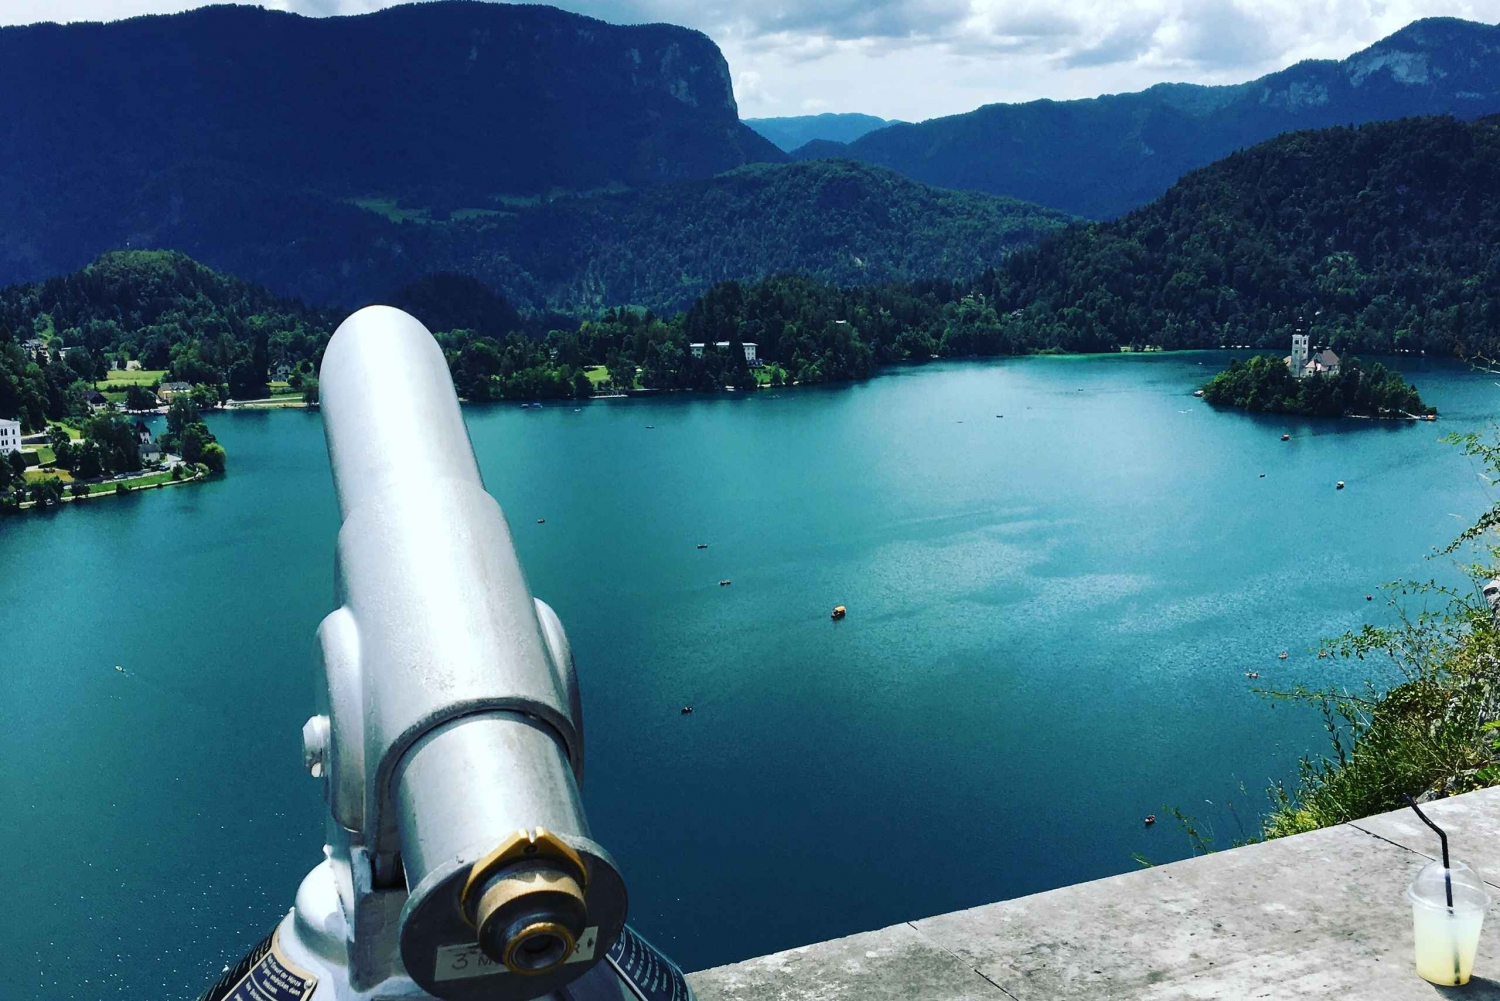 Full-Day Ljubljana and Lake Bled Trip from Zagreb